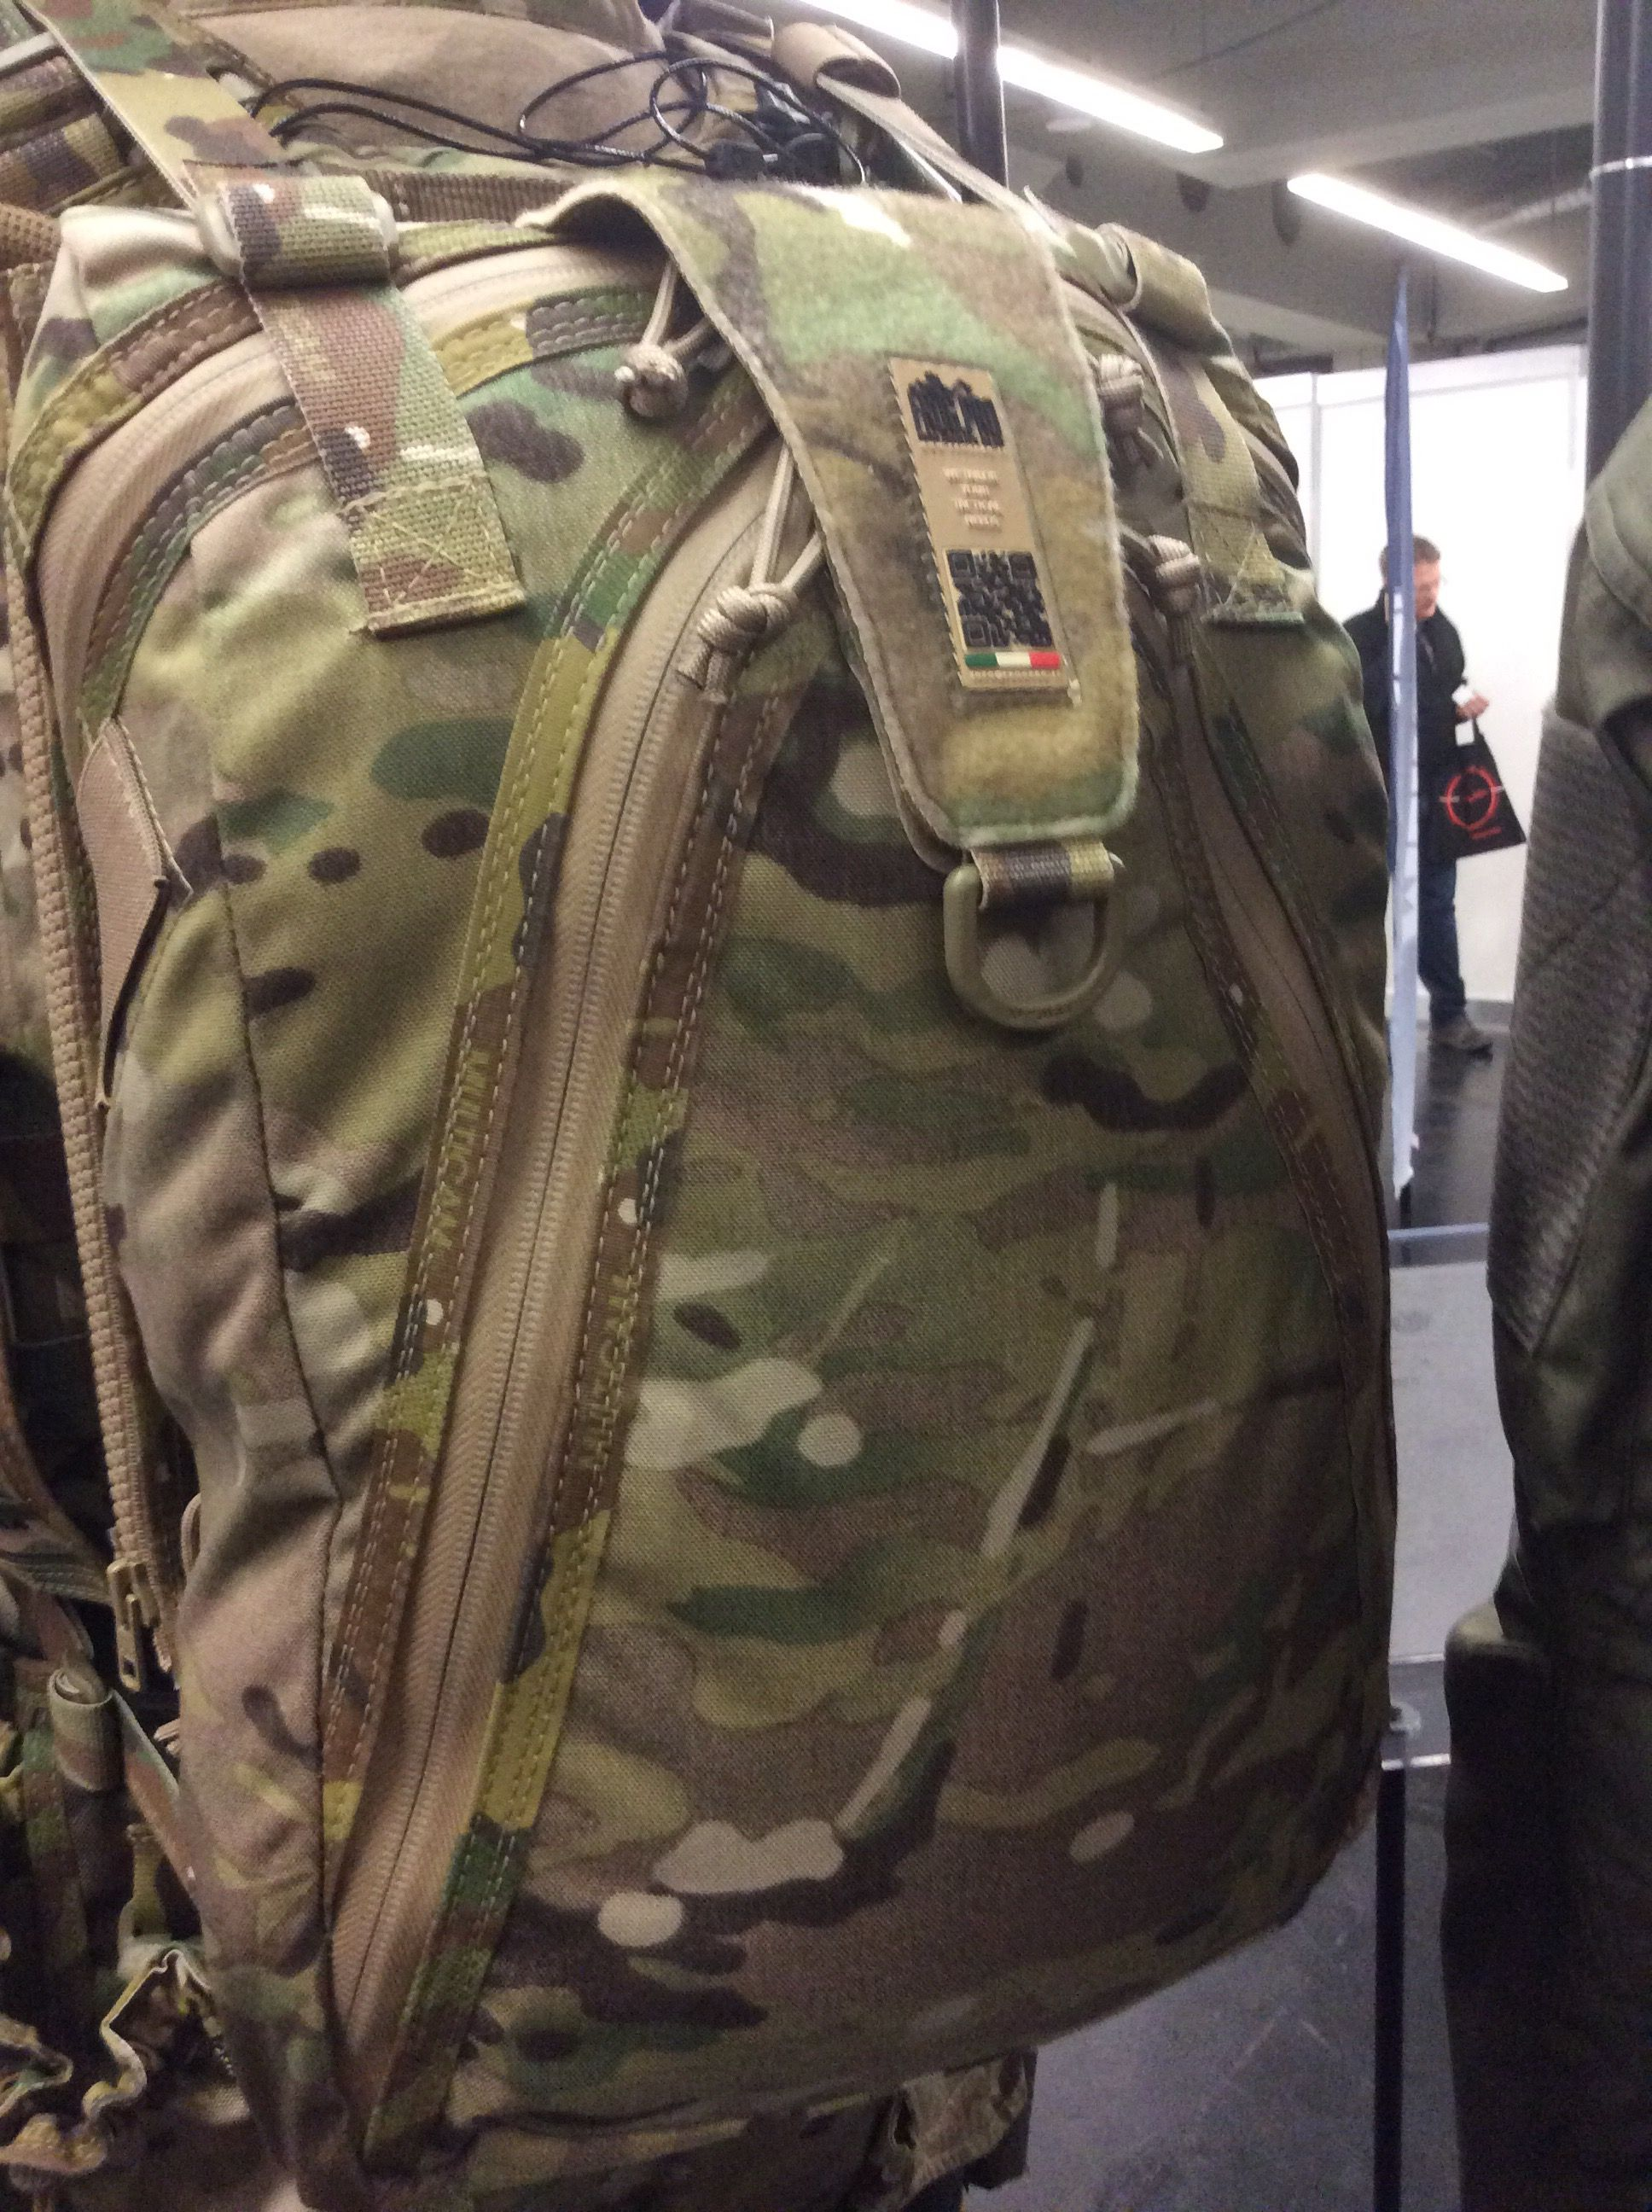 http://soldiersystems.net/category/packs/page/3/